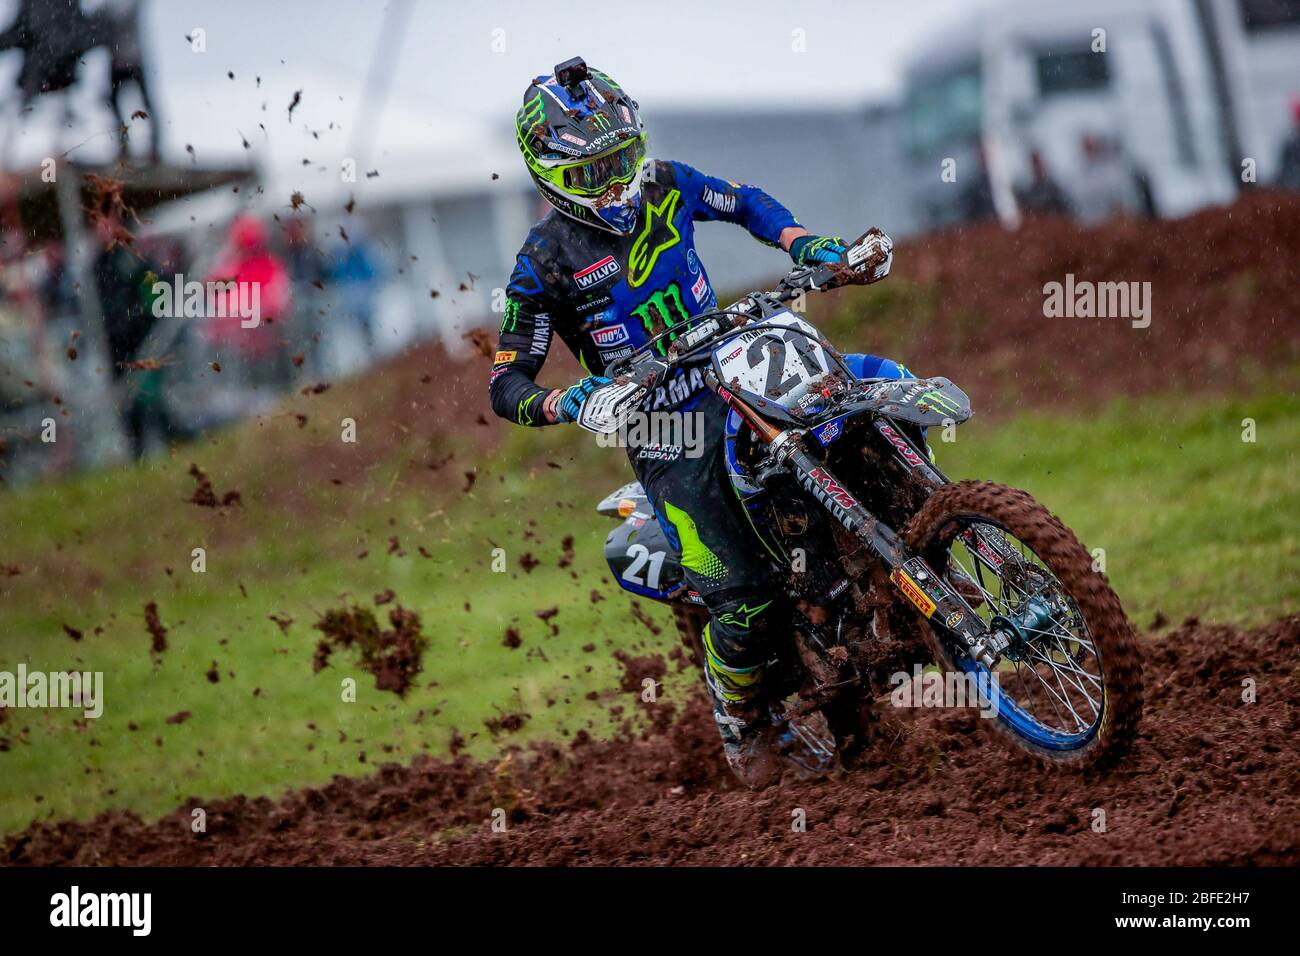 Winchester, Italy. 01st Mar, 2020. gautier paulin (fra) team yamaha factory during MXGP of Great Britain, Motocross in winchester, Italy, March 01 2020 Credit: Independent Photo Agency/Alamy Live News Stock Photo